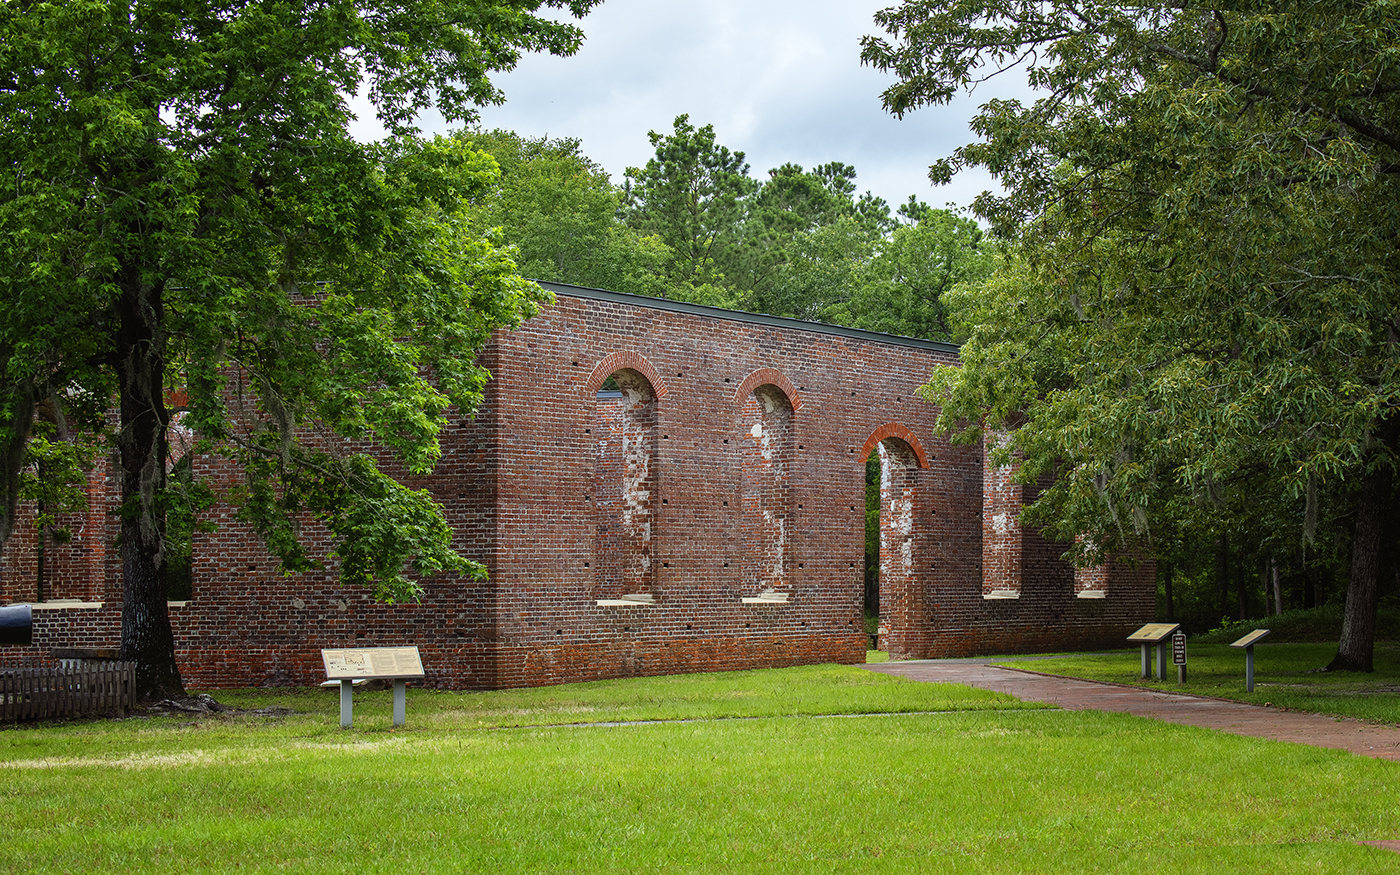 Scene from Brunswick Town Fort Anderson State Historic Site